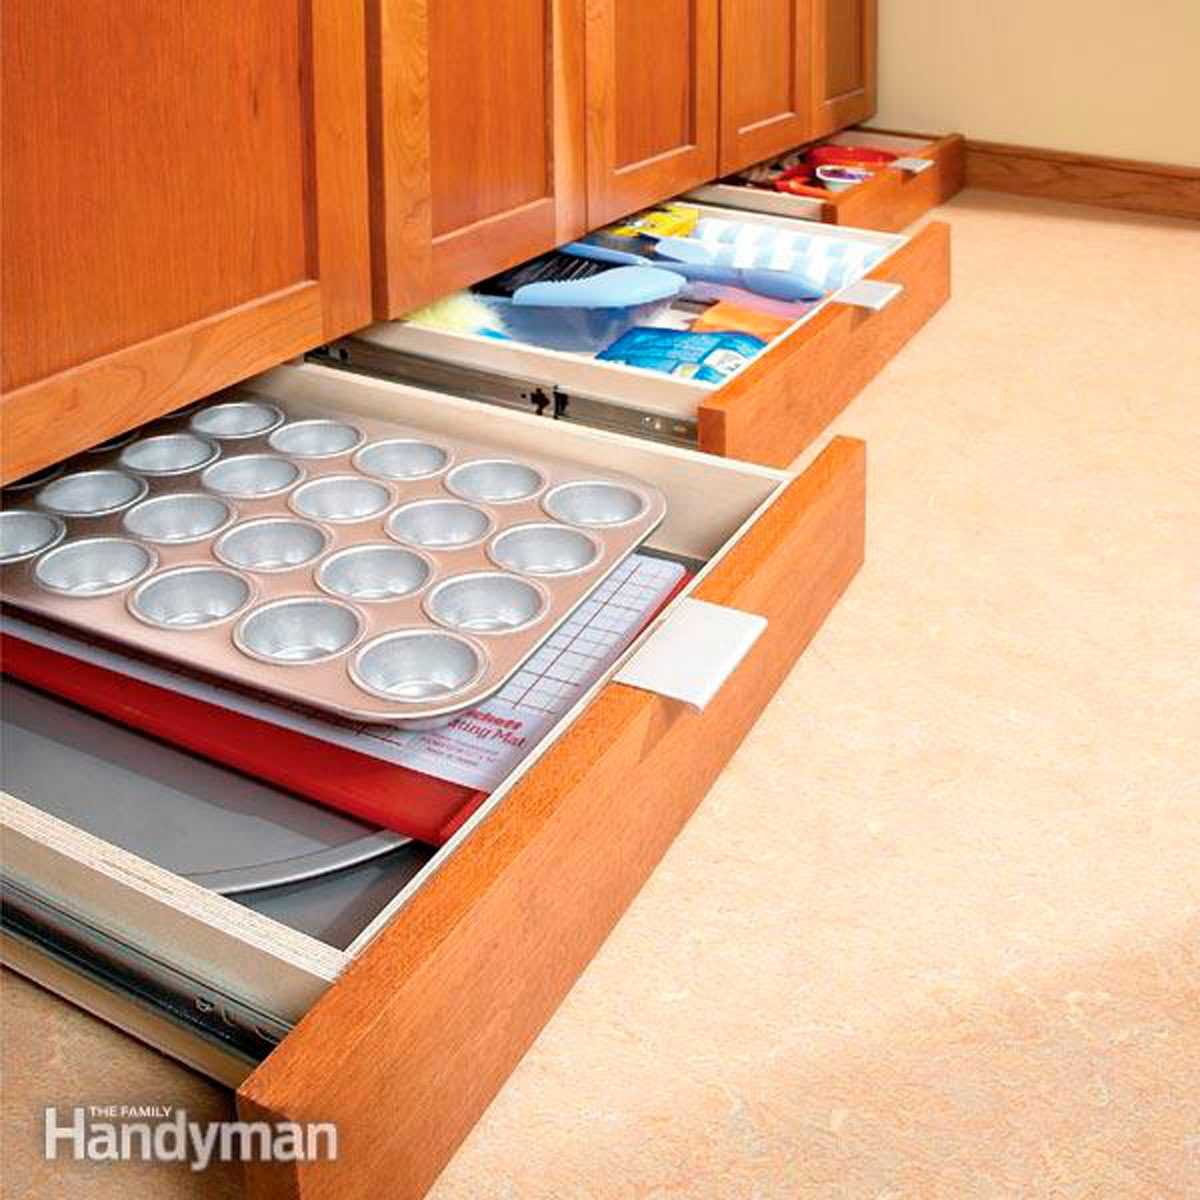 15 Kitchen Cabinet Organizers That Will Change Your Life Family Handyman